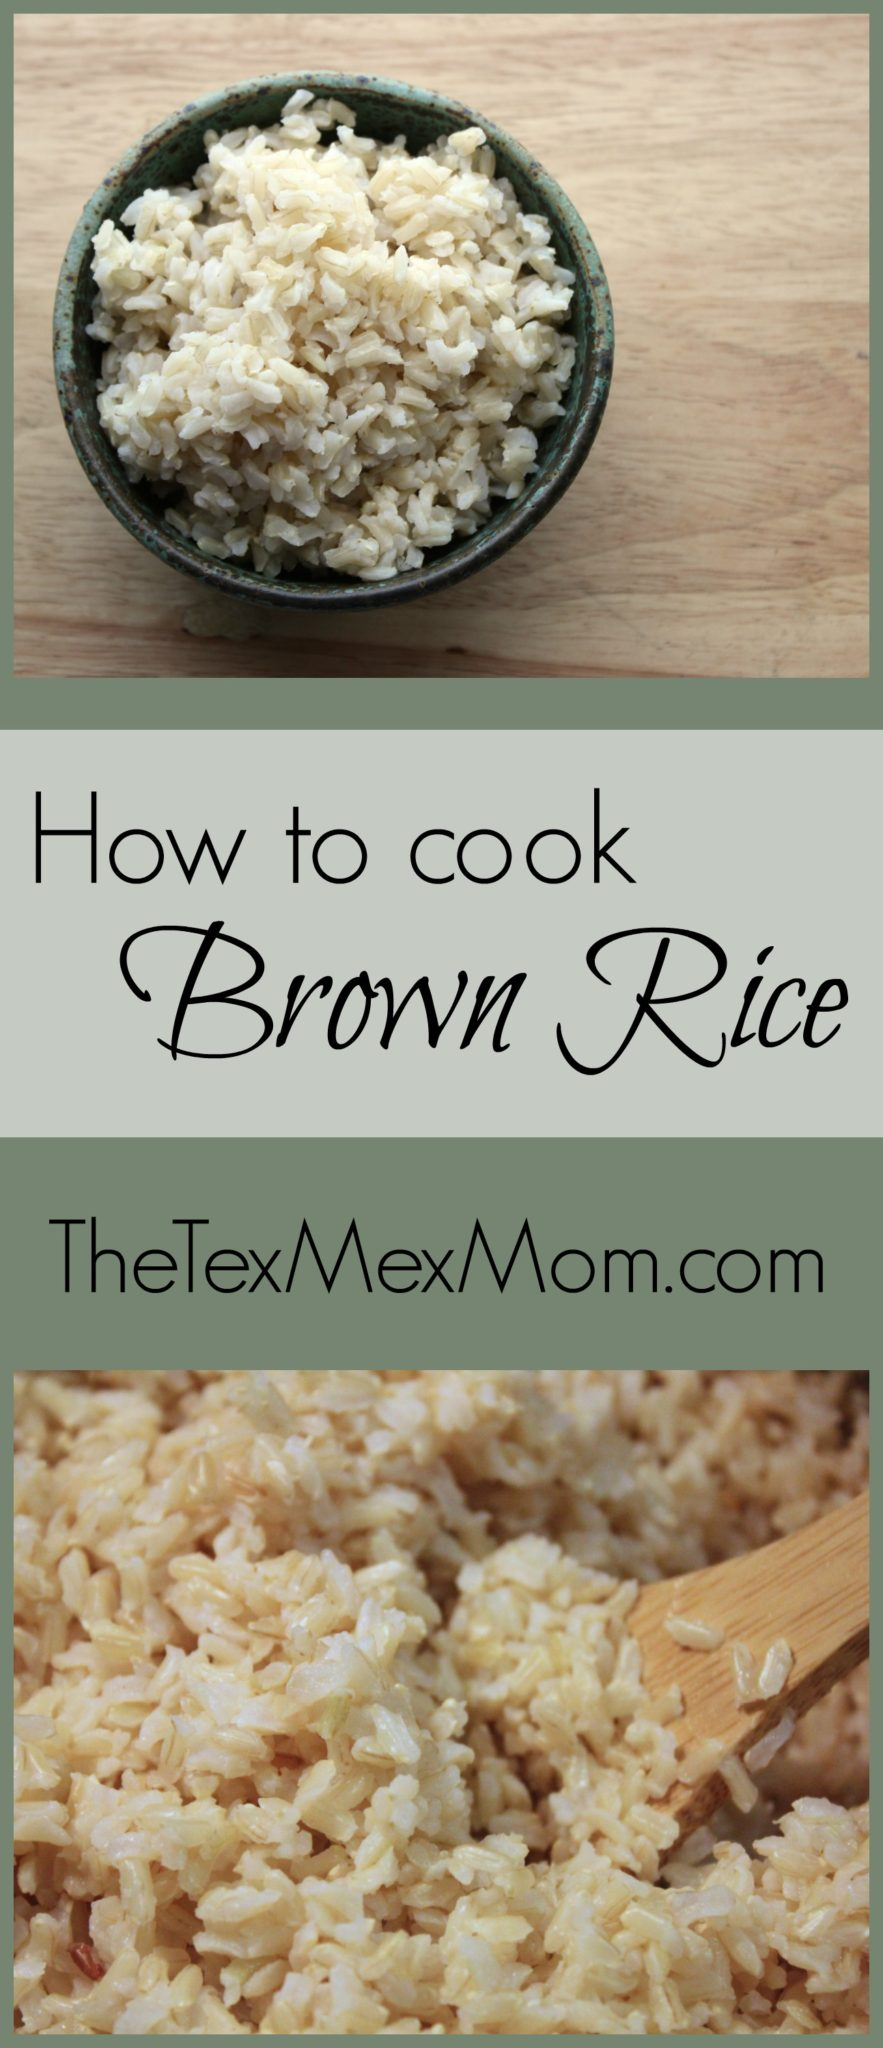 The best way to cook brown rice